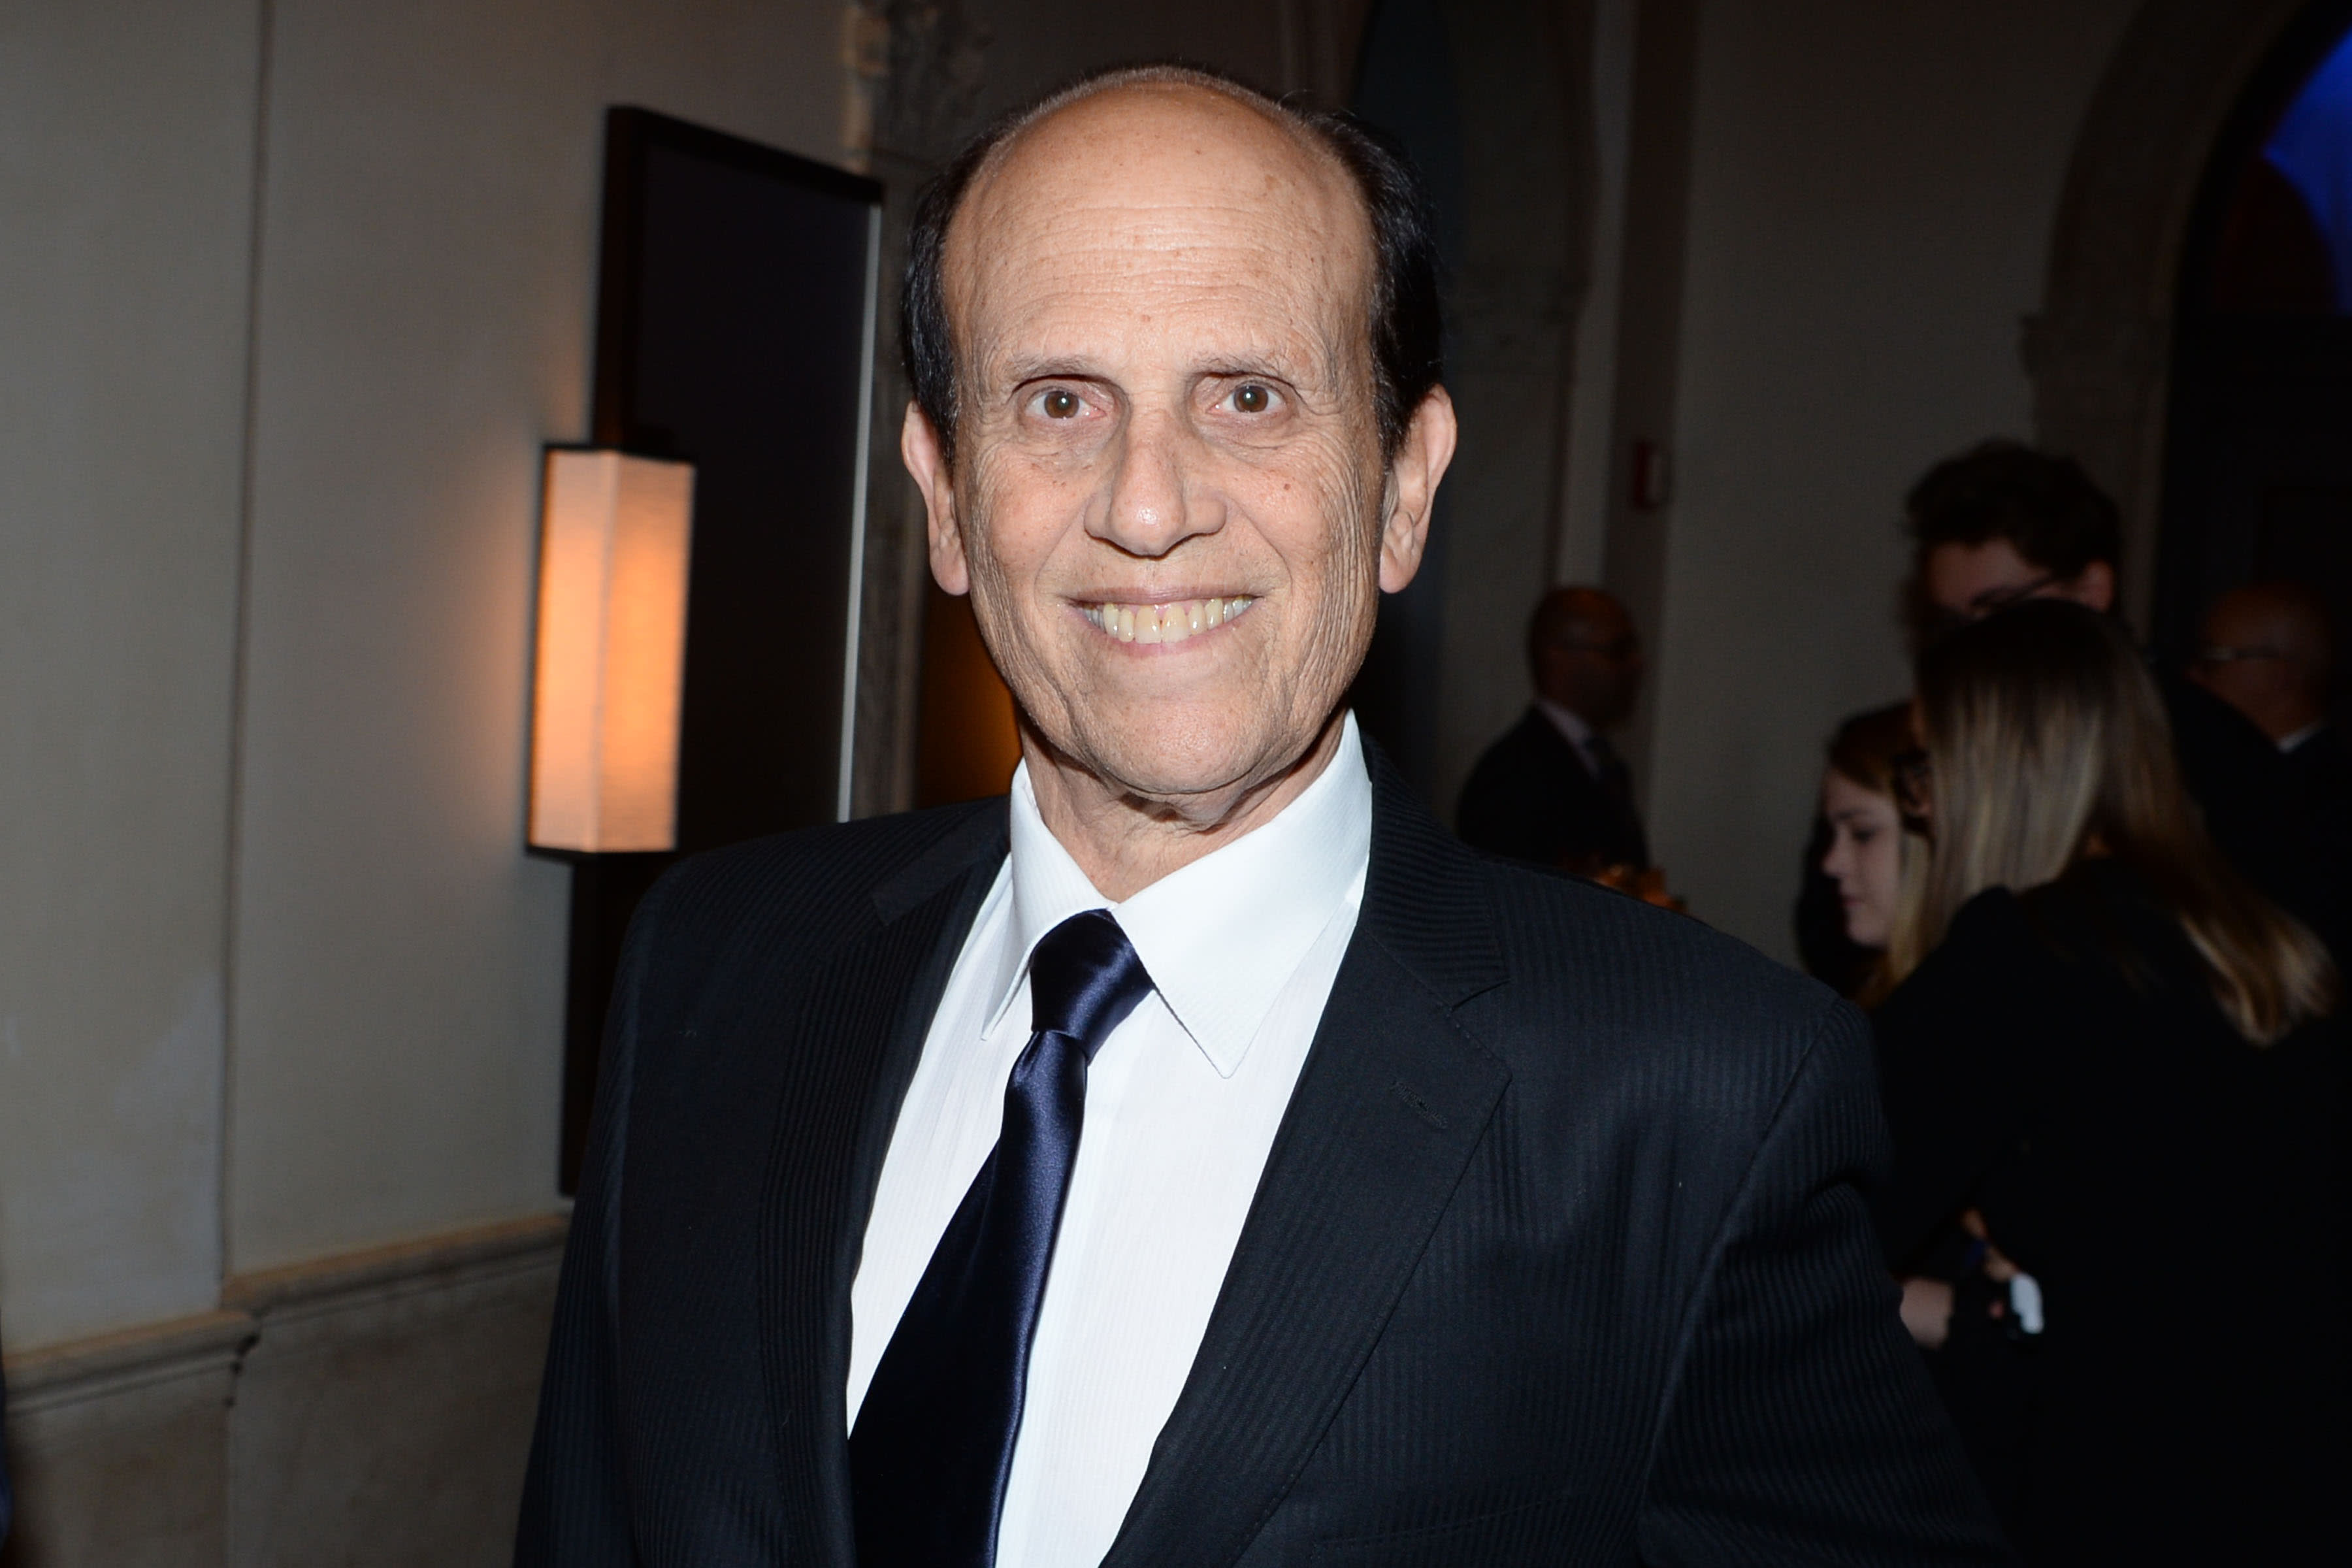 Upward mobility is a challenge for the world amid tech revolution, says Mike Milken